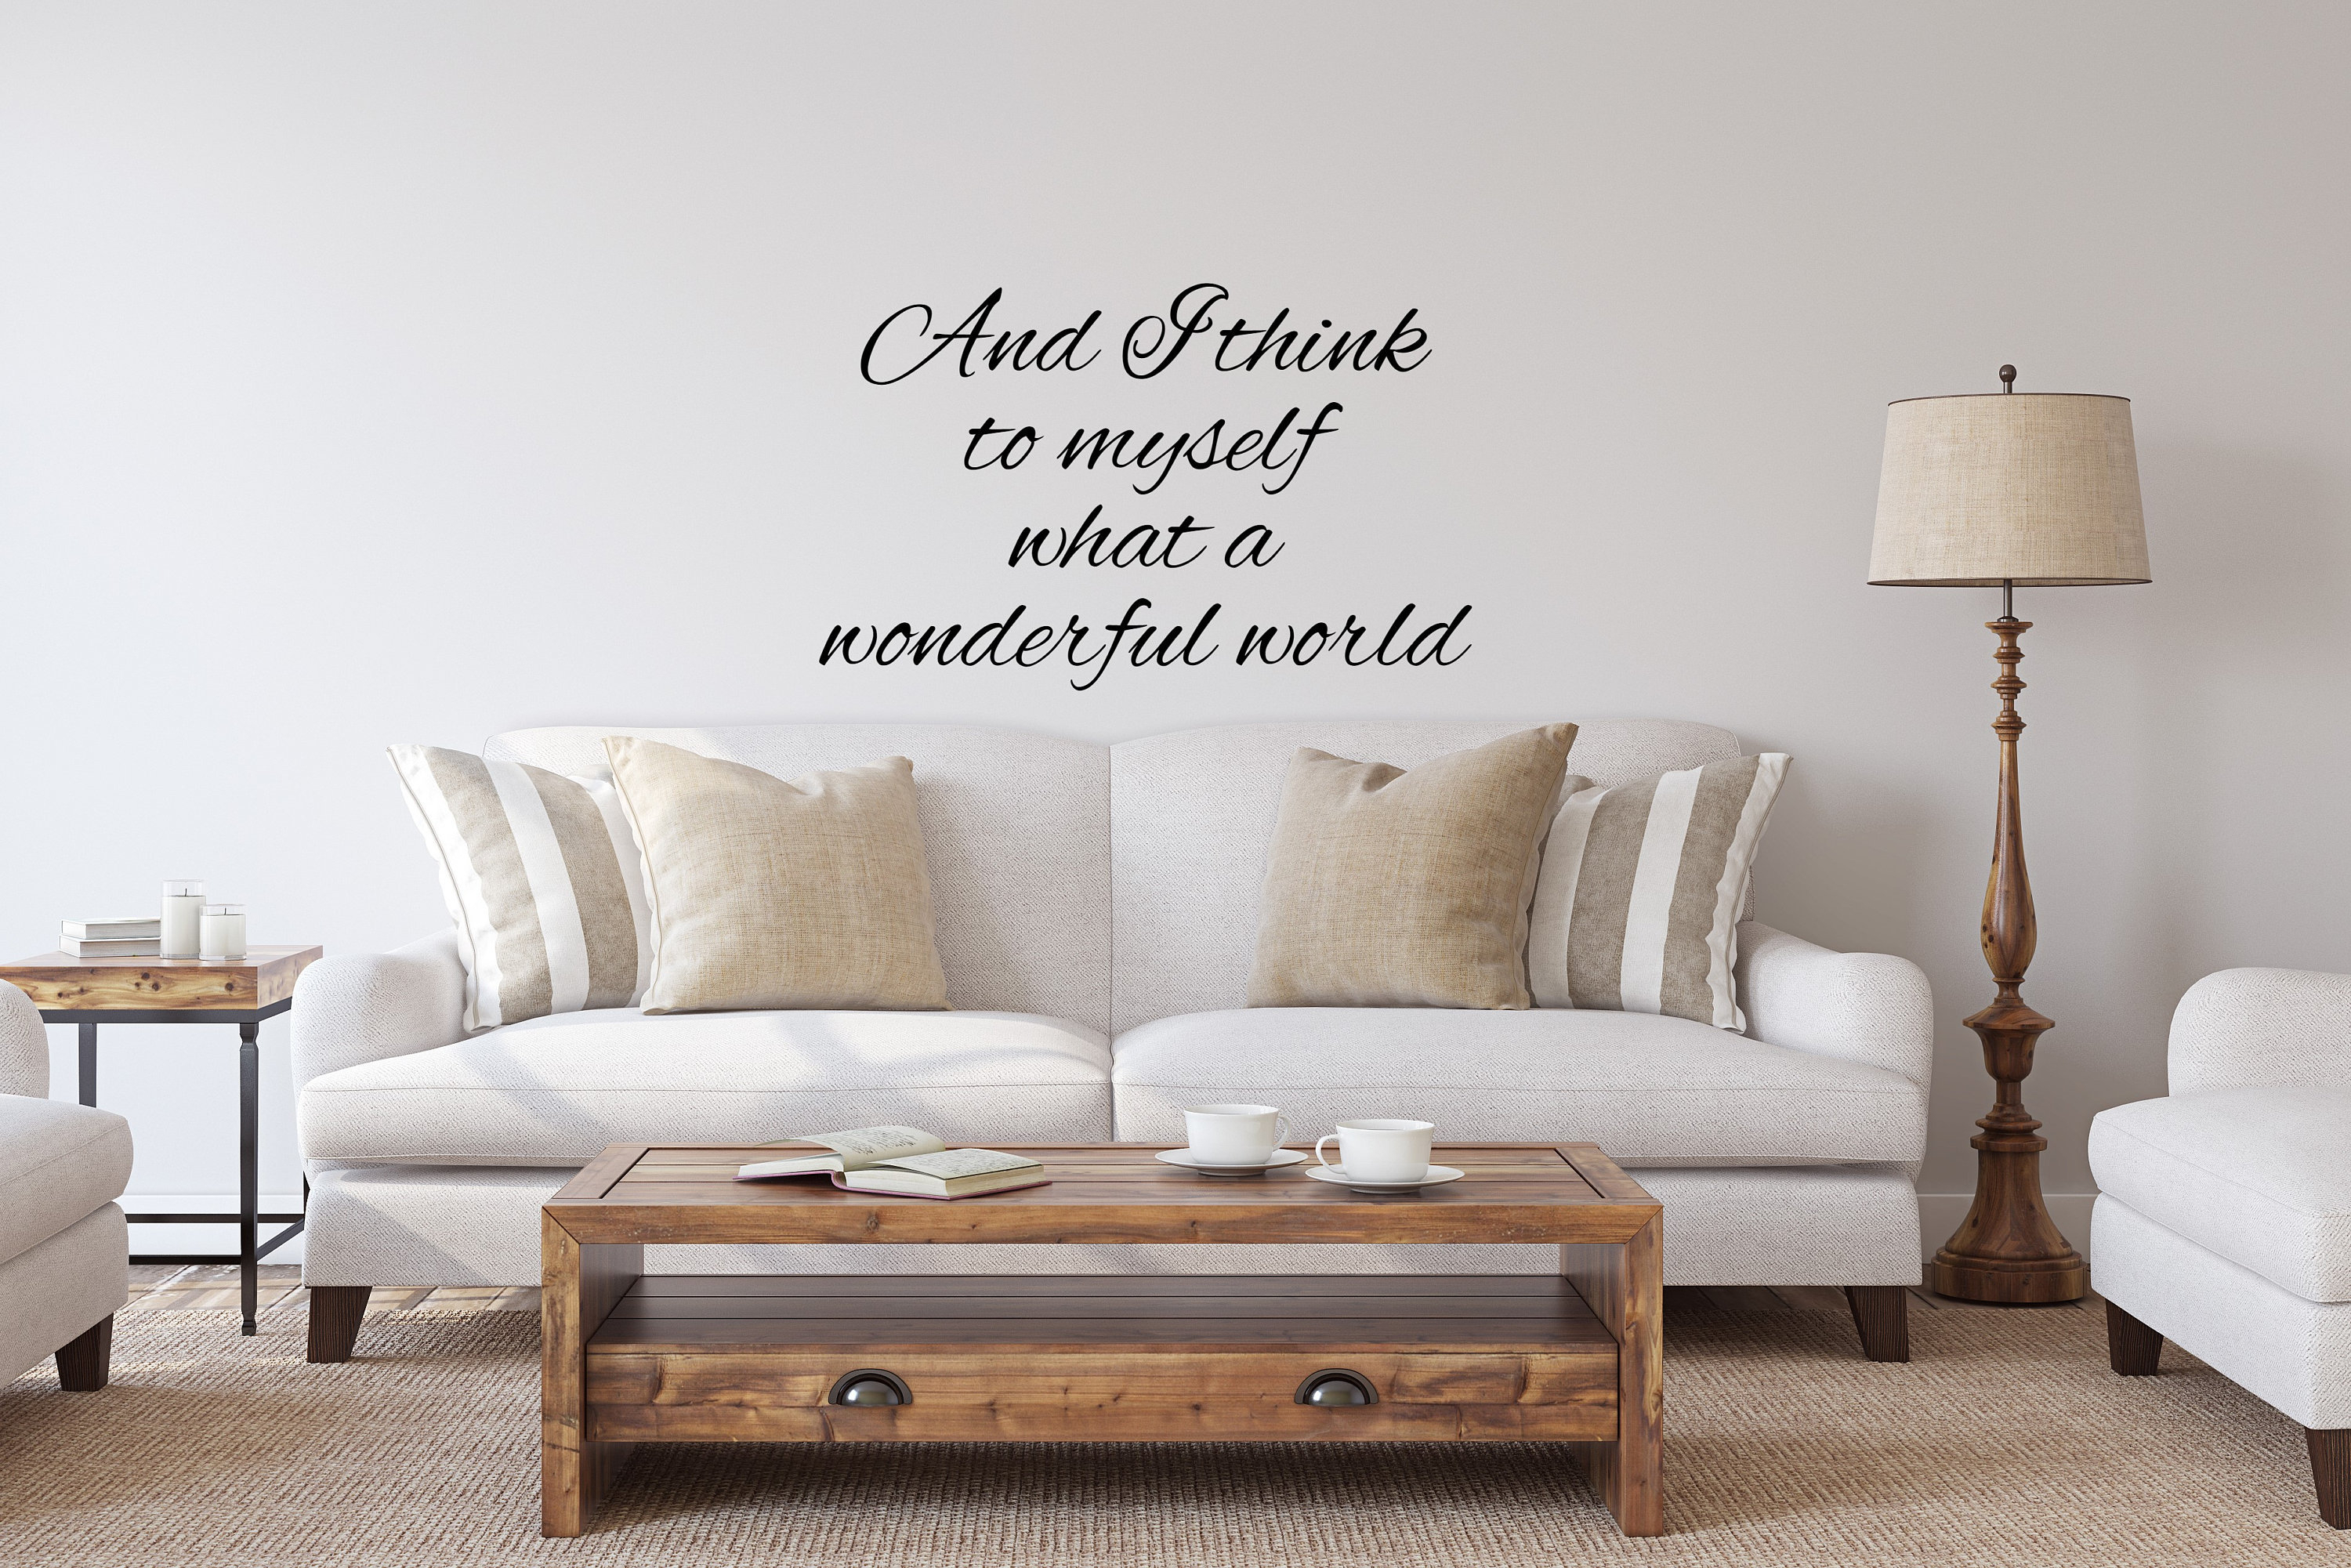 Preferred And I Think To Myself What A Wonderful World Wall Art Metal